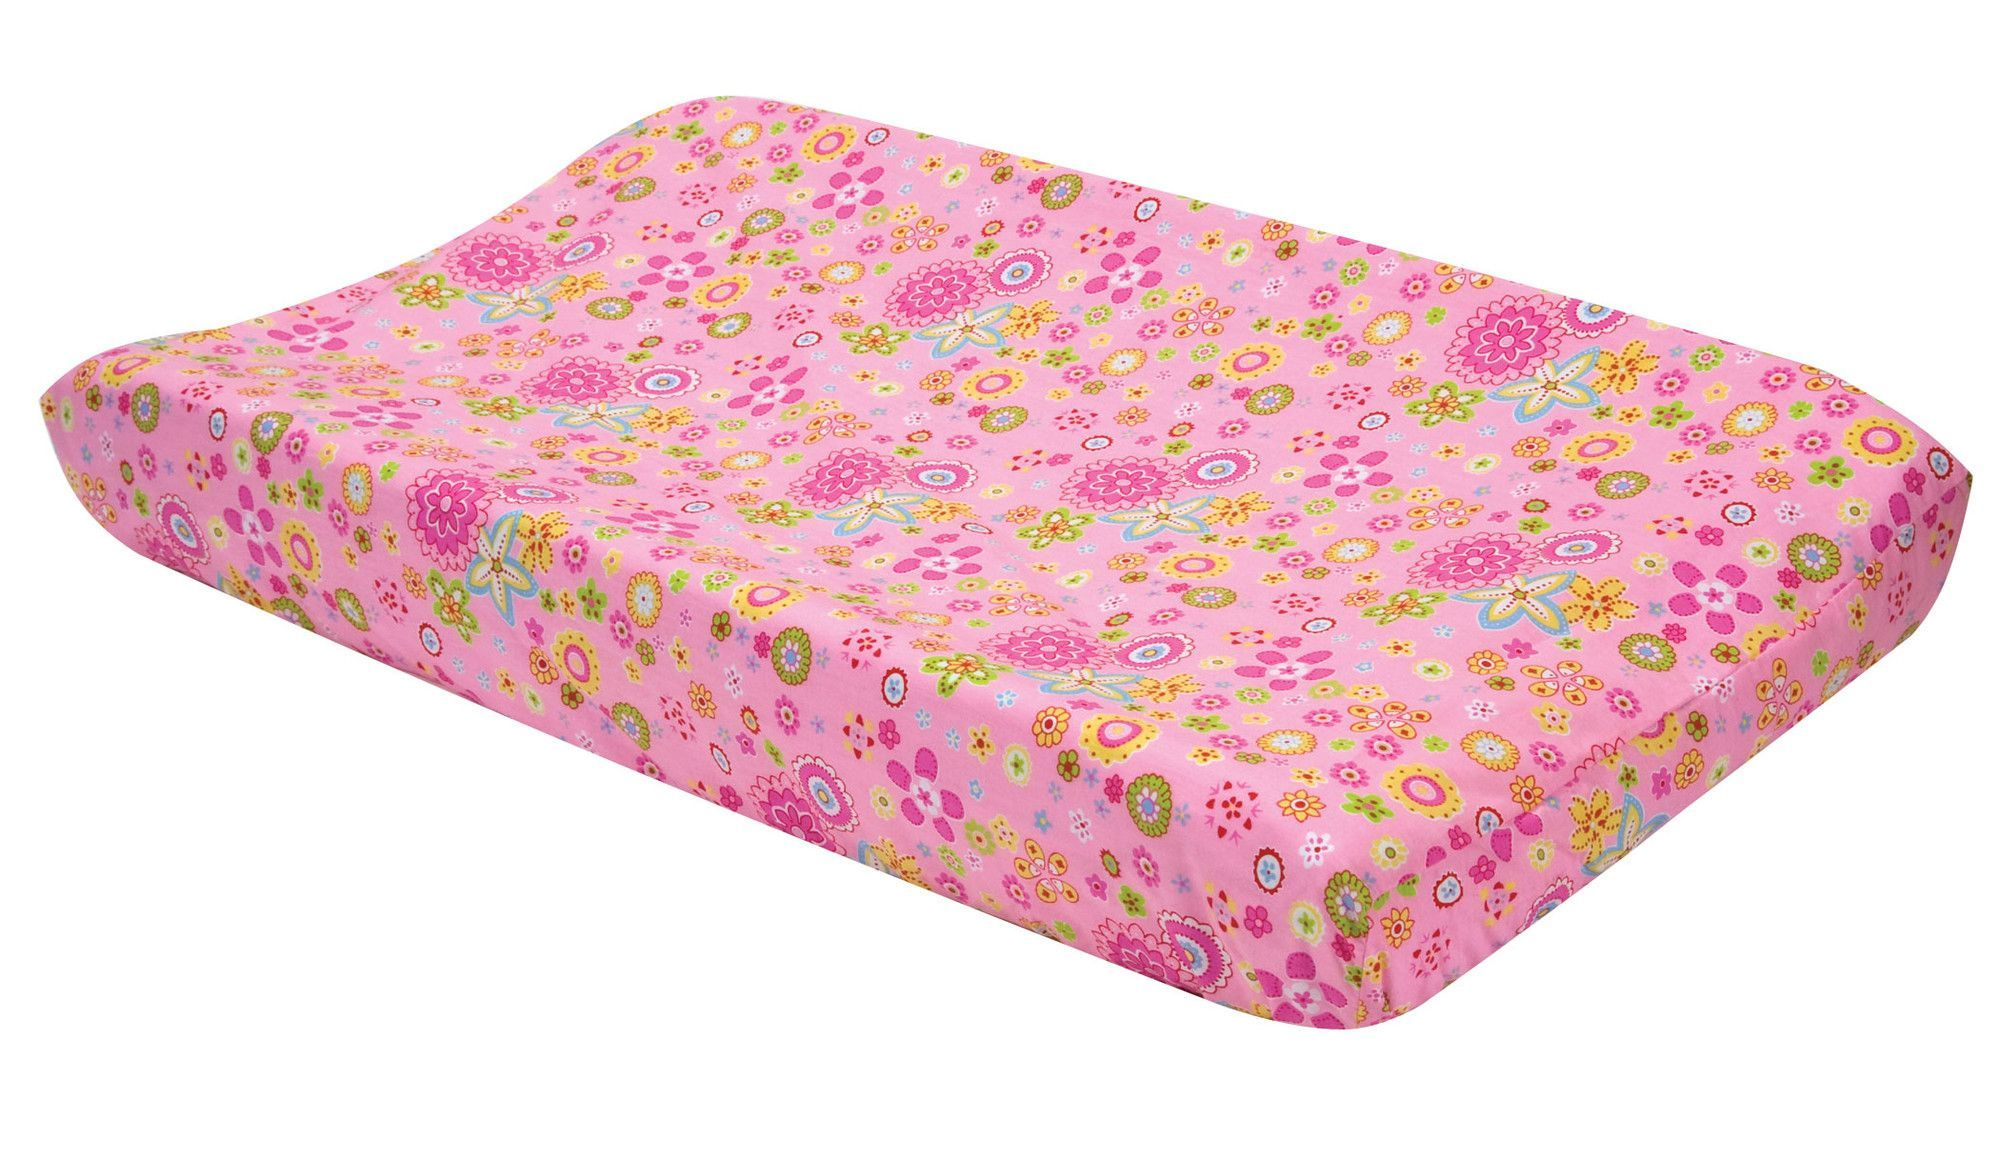 Sherbet Changing Pad Cover